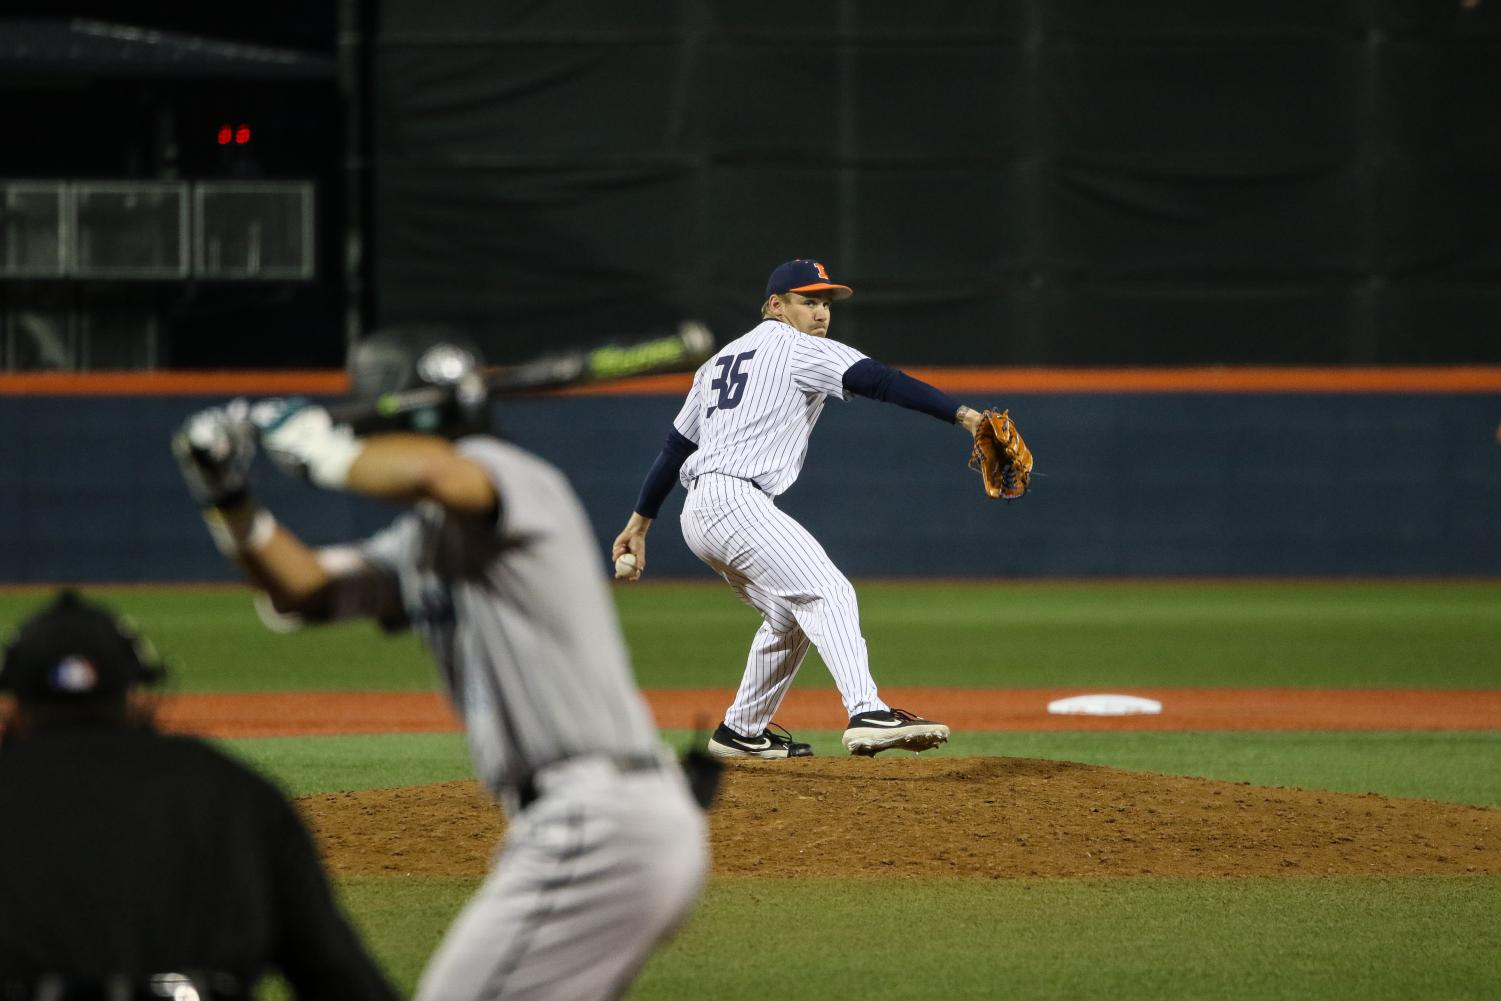 Illini pitcher Josh Harris pitches to a Chanticleer batter in the fifth inning. Harris got the win for Illinois, improving his record to 2-1 this season.